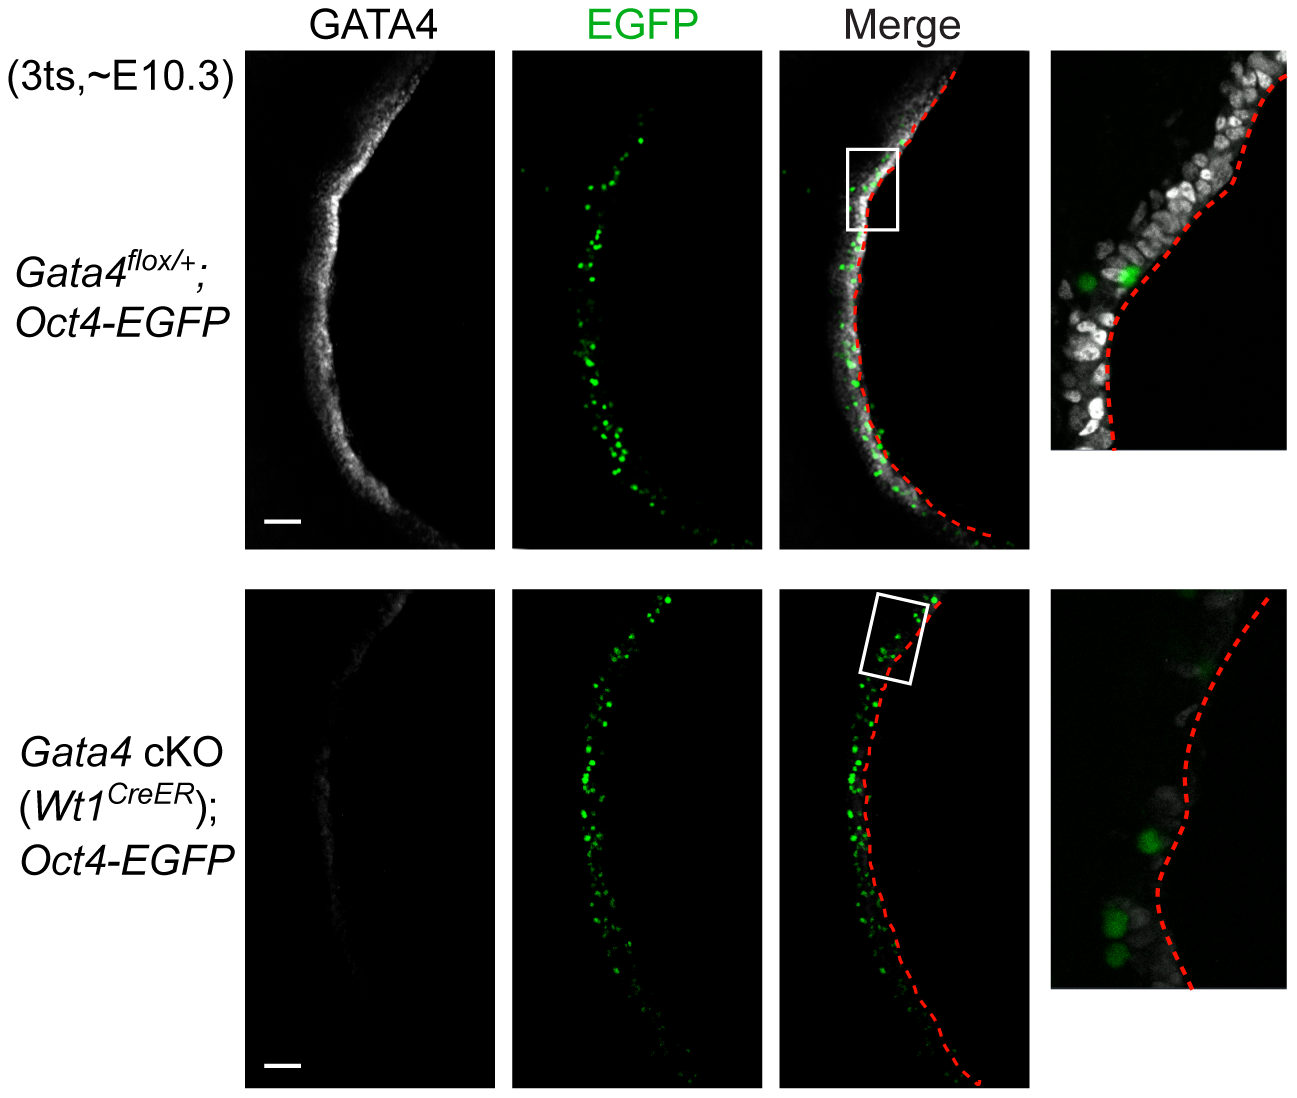 Migration of primordial germ cells is unaffected in <i>Gata4</i> cKO embryos.